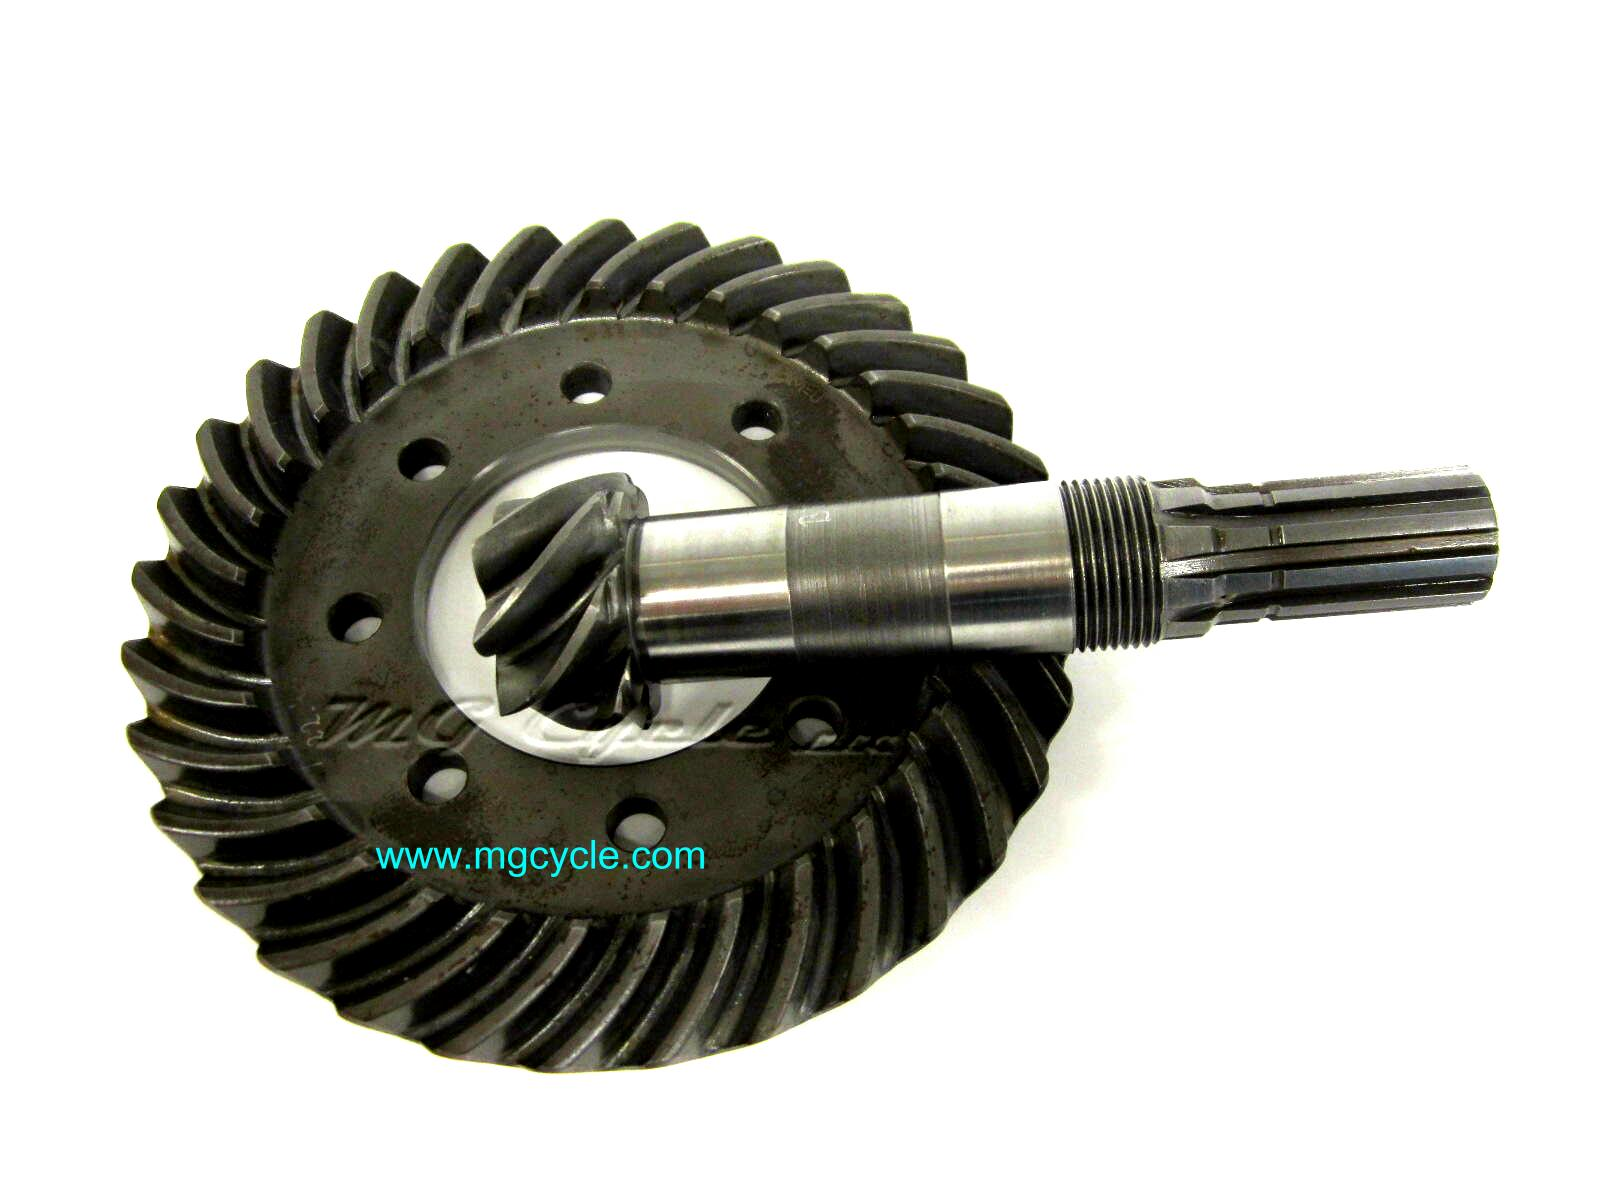 7/33 ring and pinion gear set 1975 to 1993 GU17354650